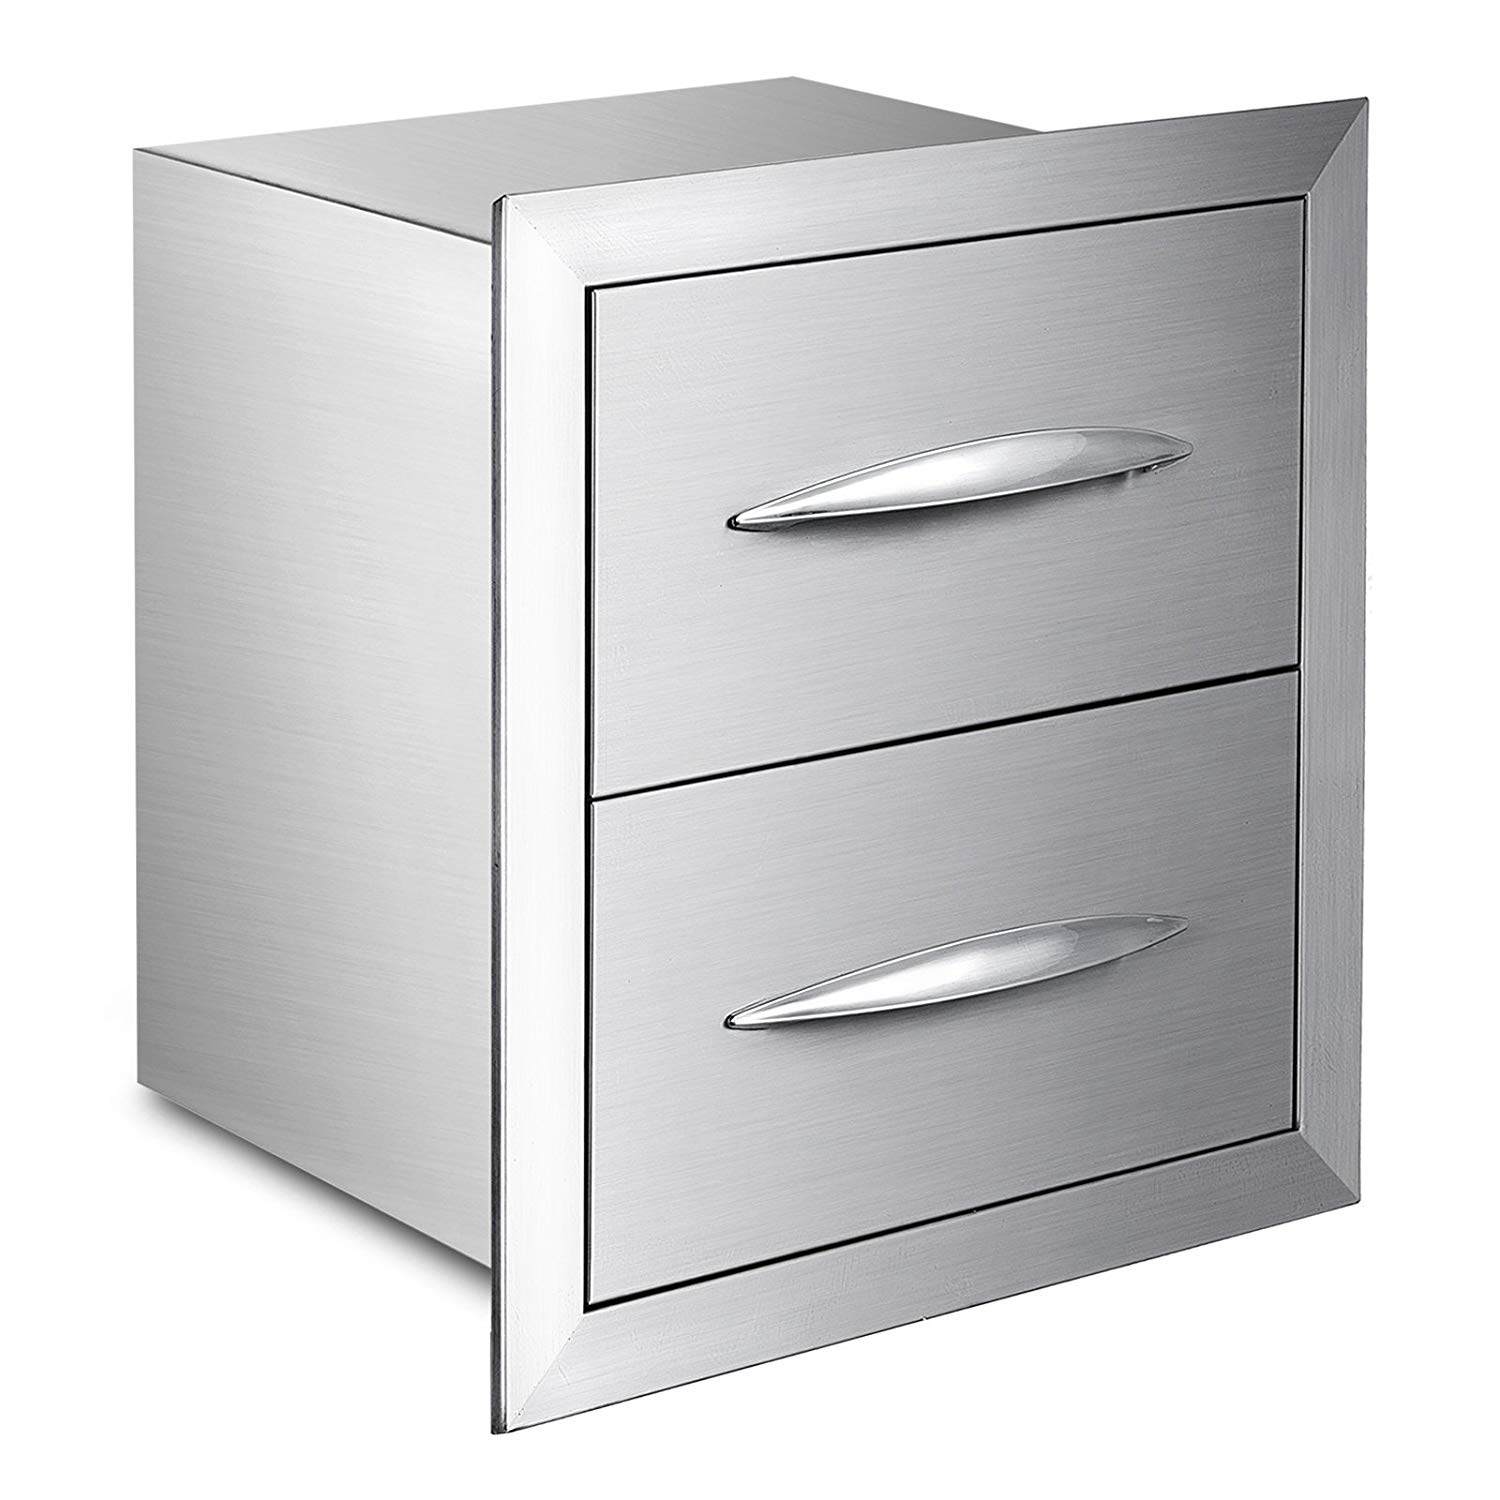 """Mophorn Outdoor Kitchen Drawer Stainless Steel BBQ Island Drawer Storage with Chrome Handle Double Access Drawer Flush Mount Sliver Double Access Drawer (18""""x15"""", Double Access Drawer)"""